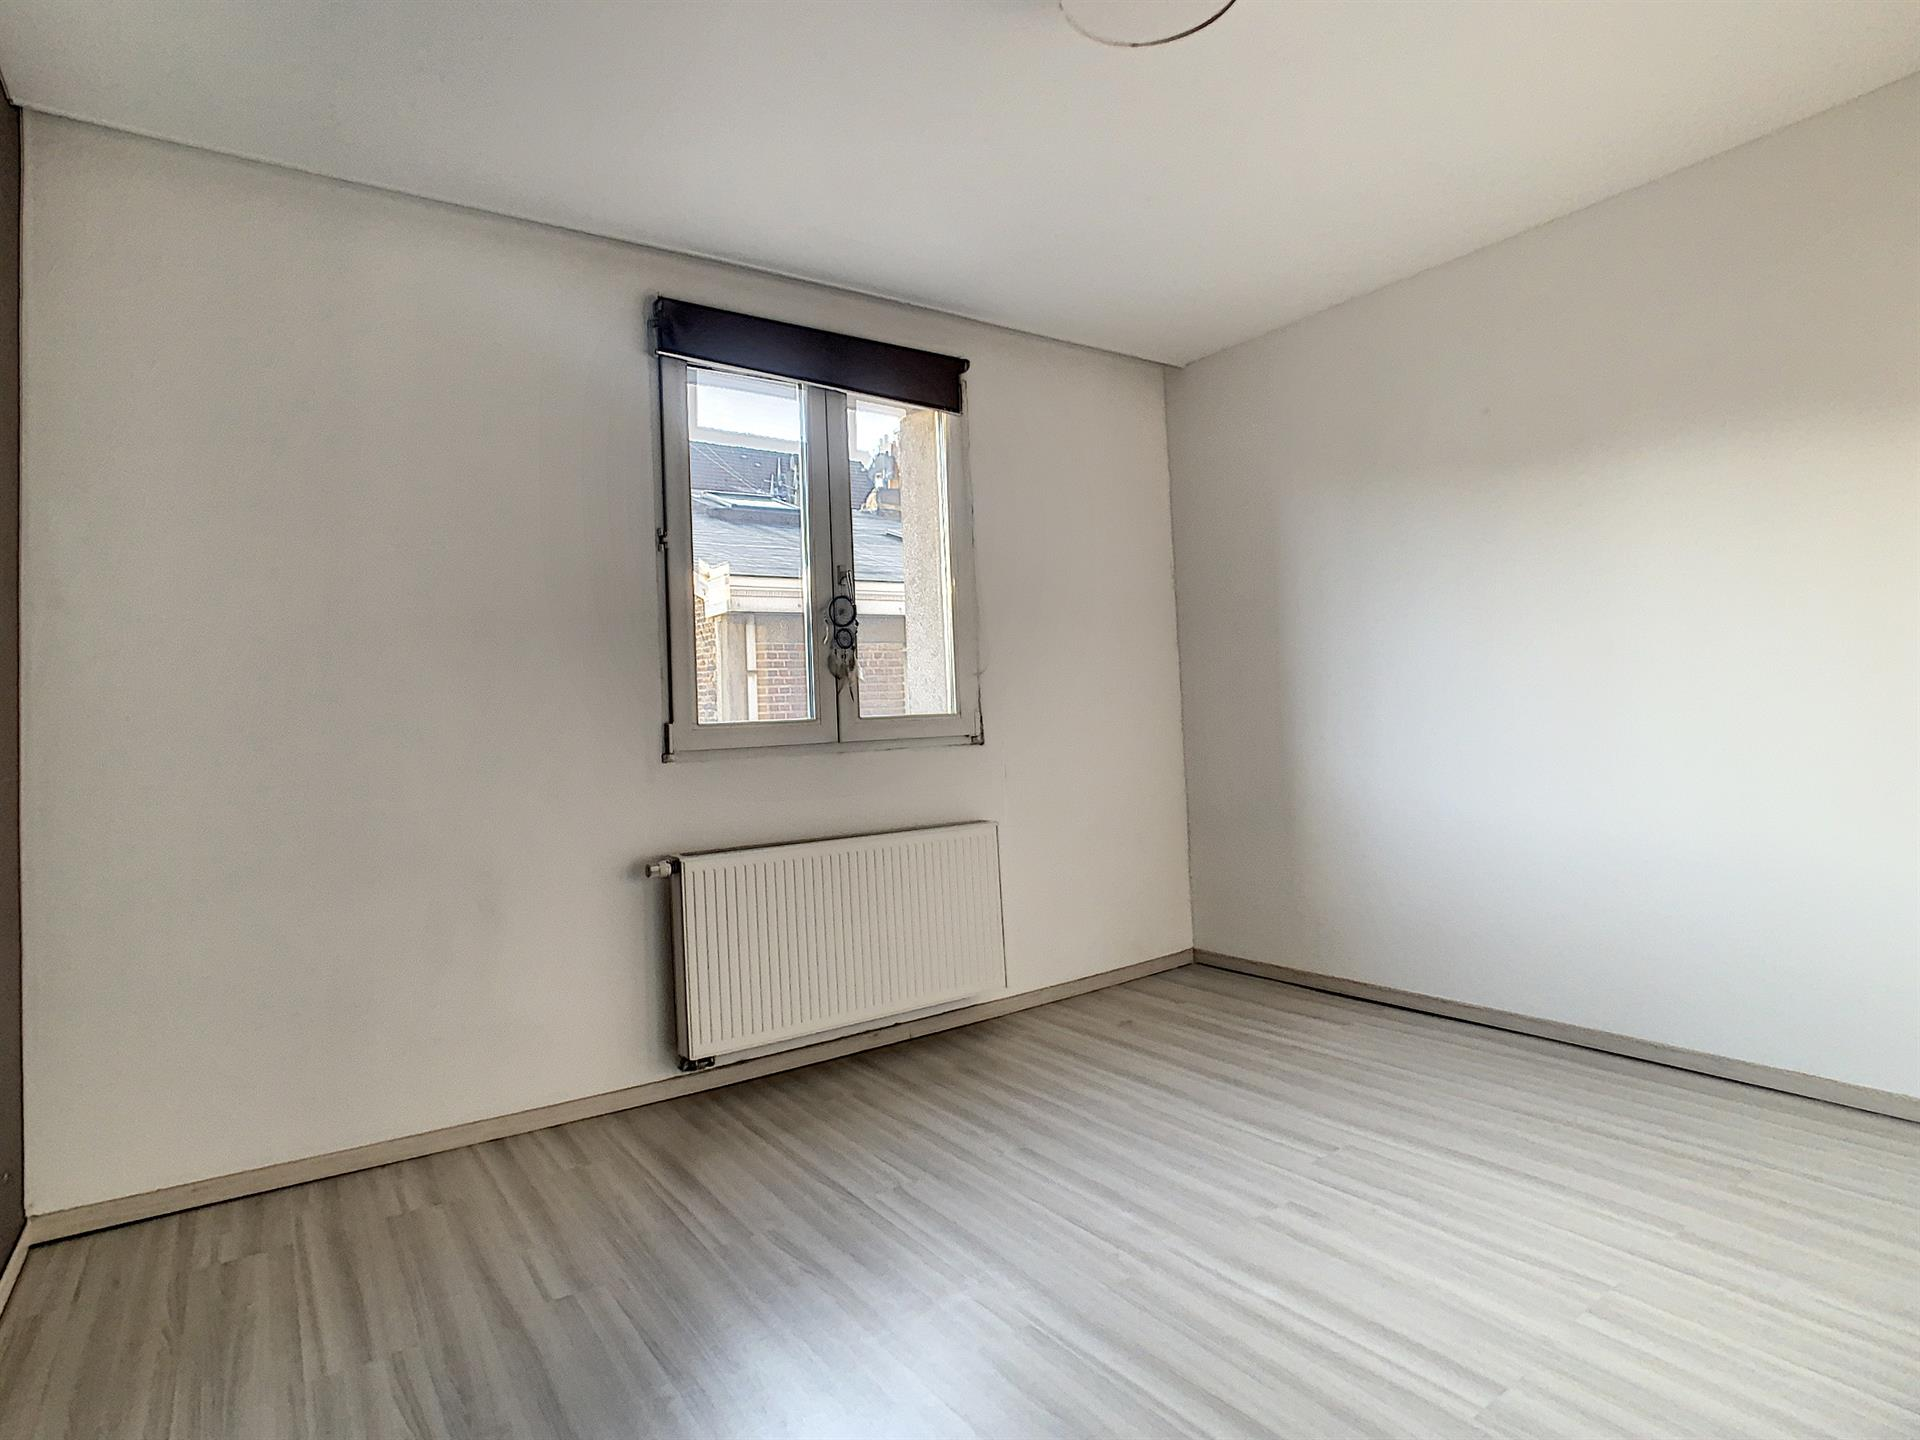 Appartement - Forest - #4242627-7